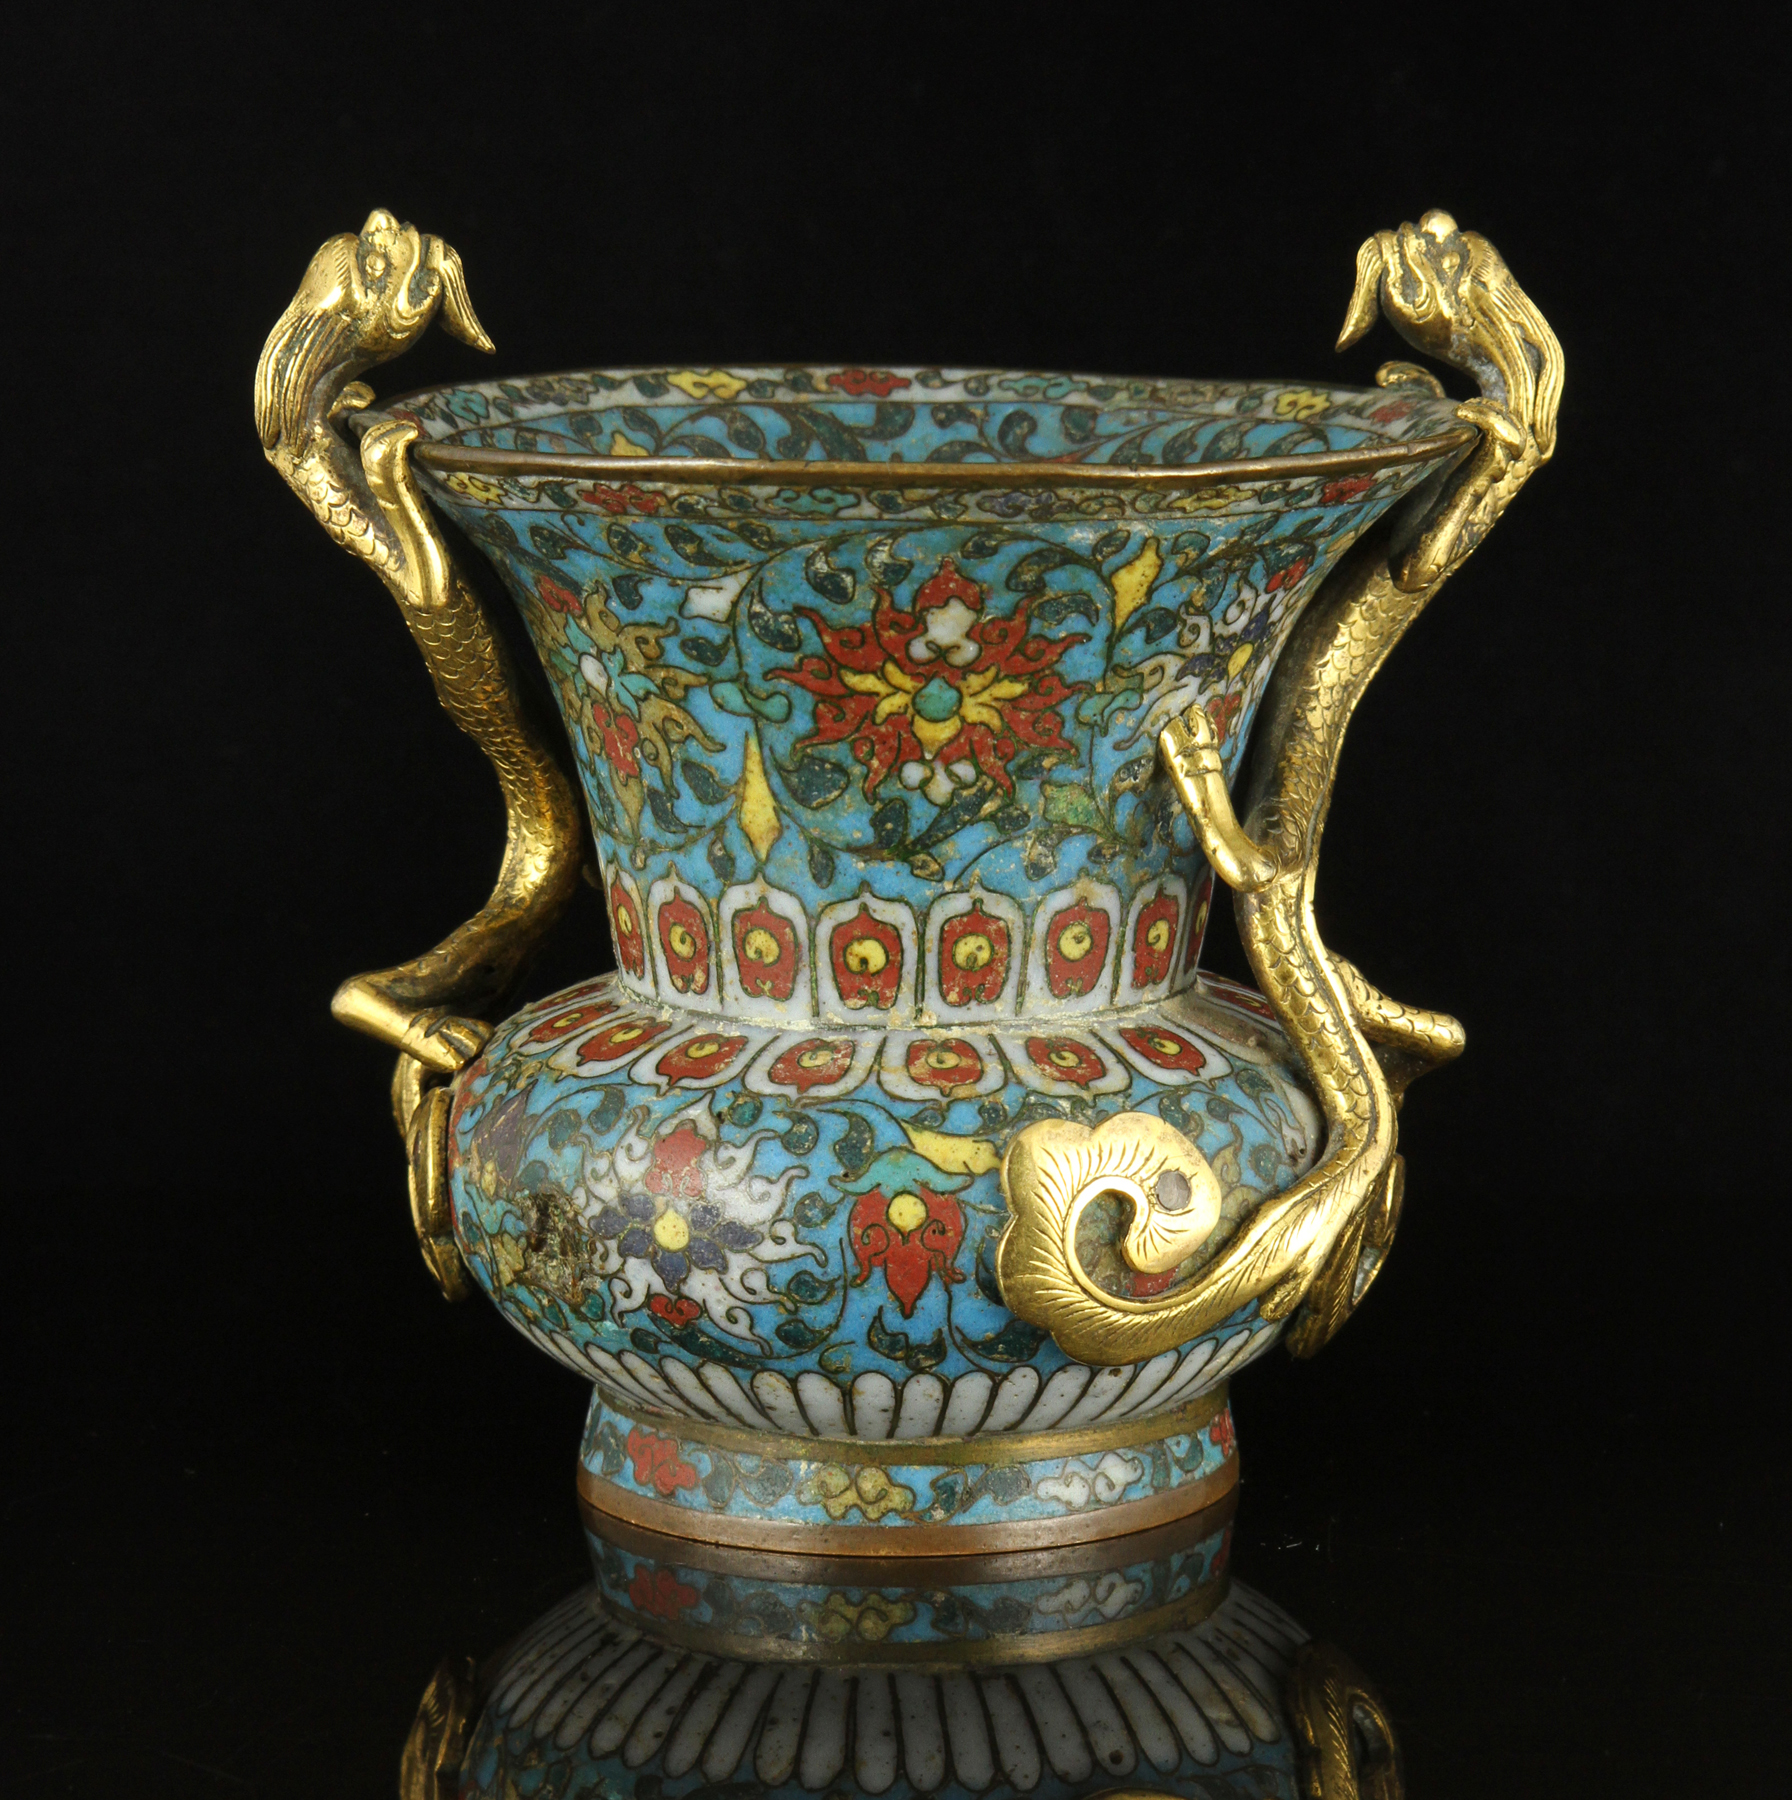 Kaminski Auctions to Host Two Important Asian Sales Prior